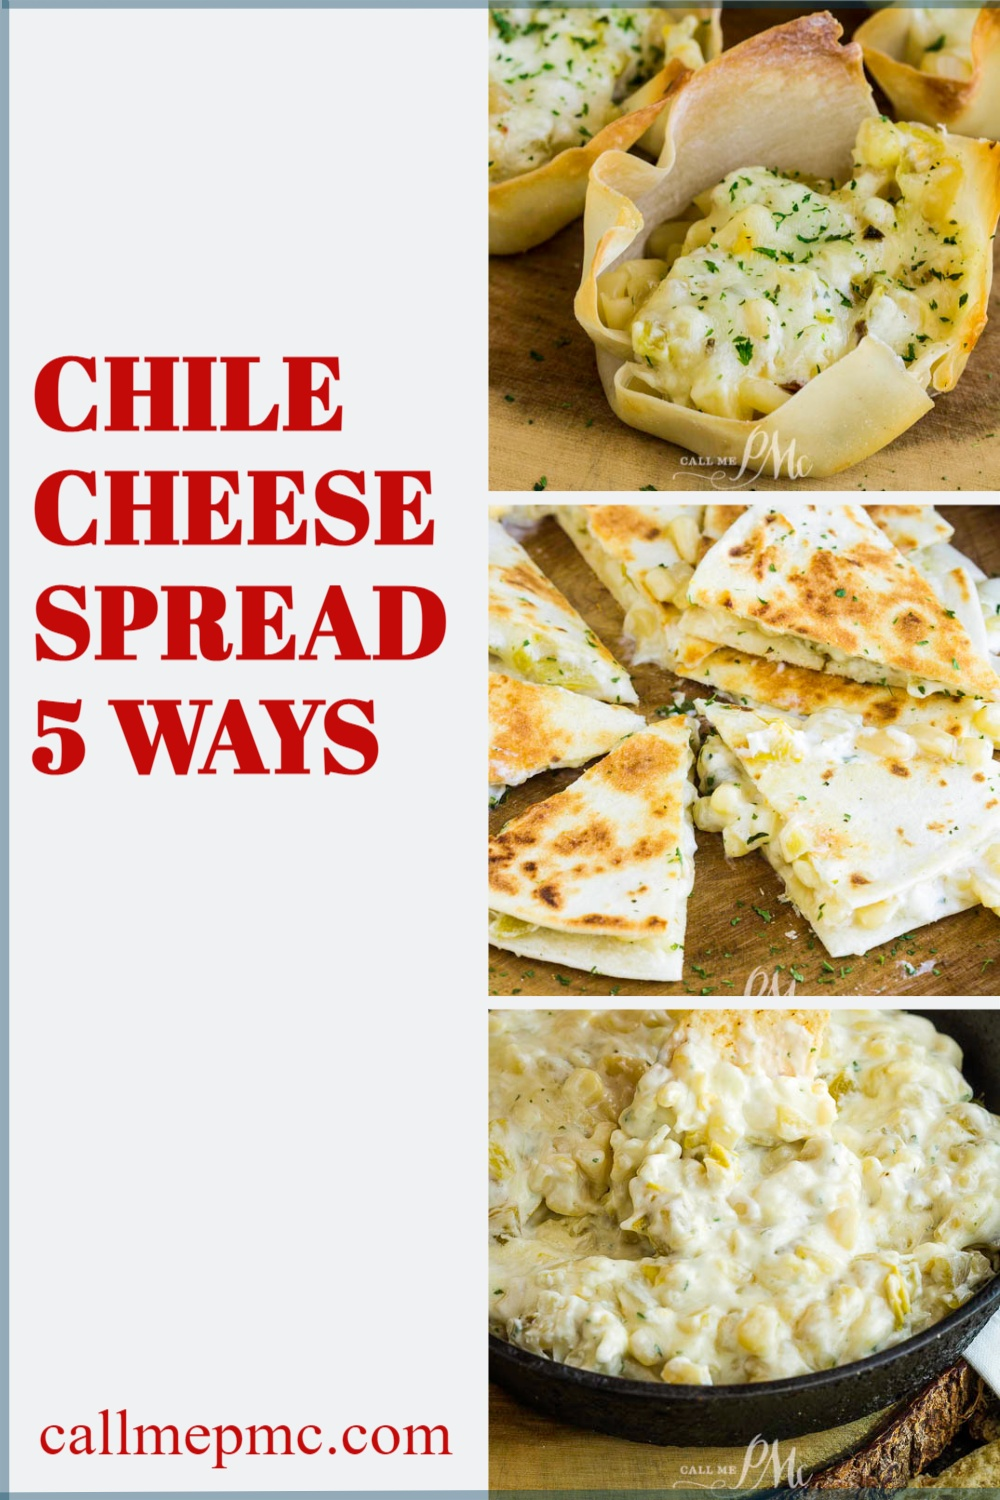 Chile Cheese Spread Five Ways takes a basic spread or dip & uses it in different recipes. It's easy to make and has great flavors.